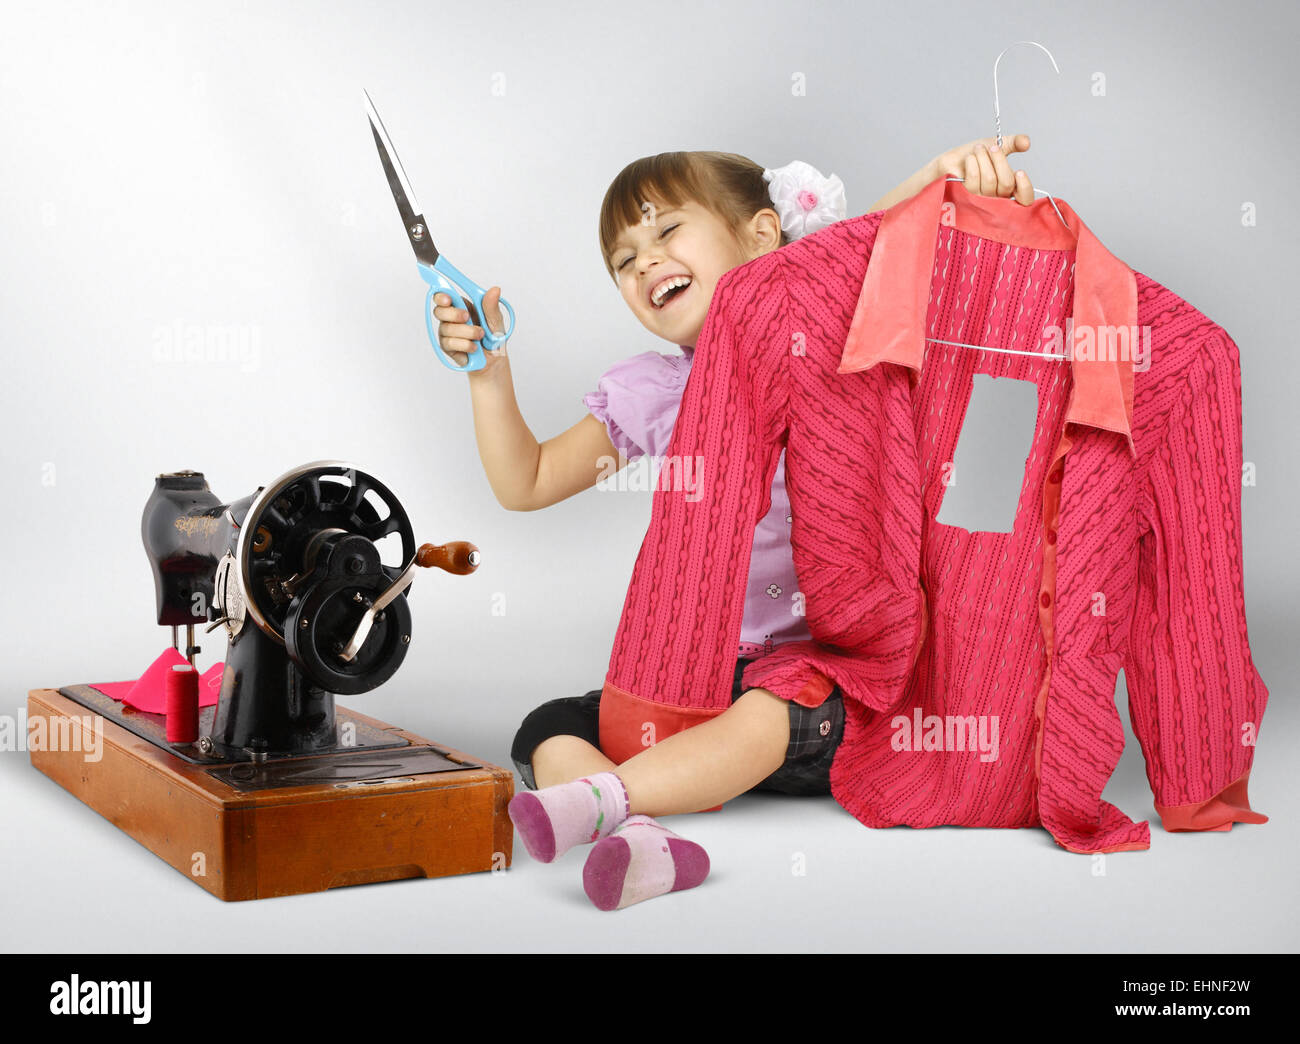 Petite fille , couture robe cuting Photo Stock